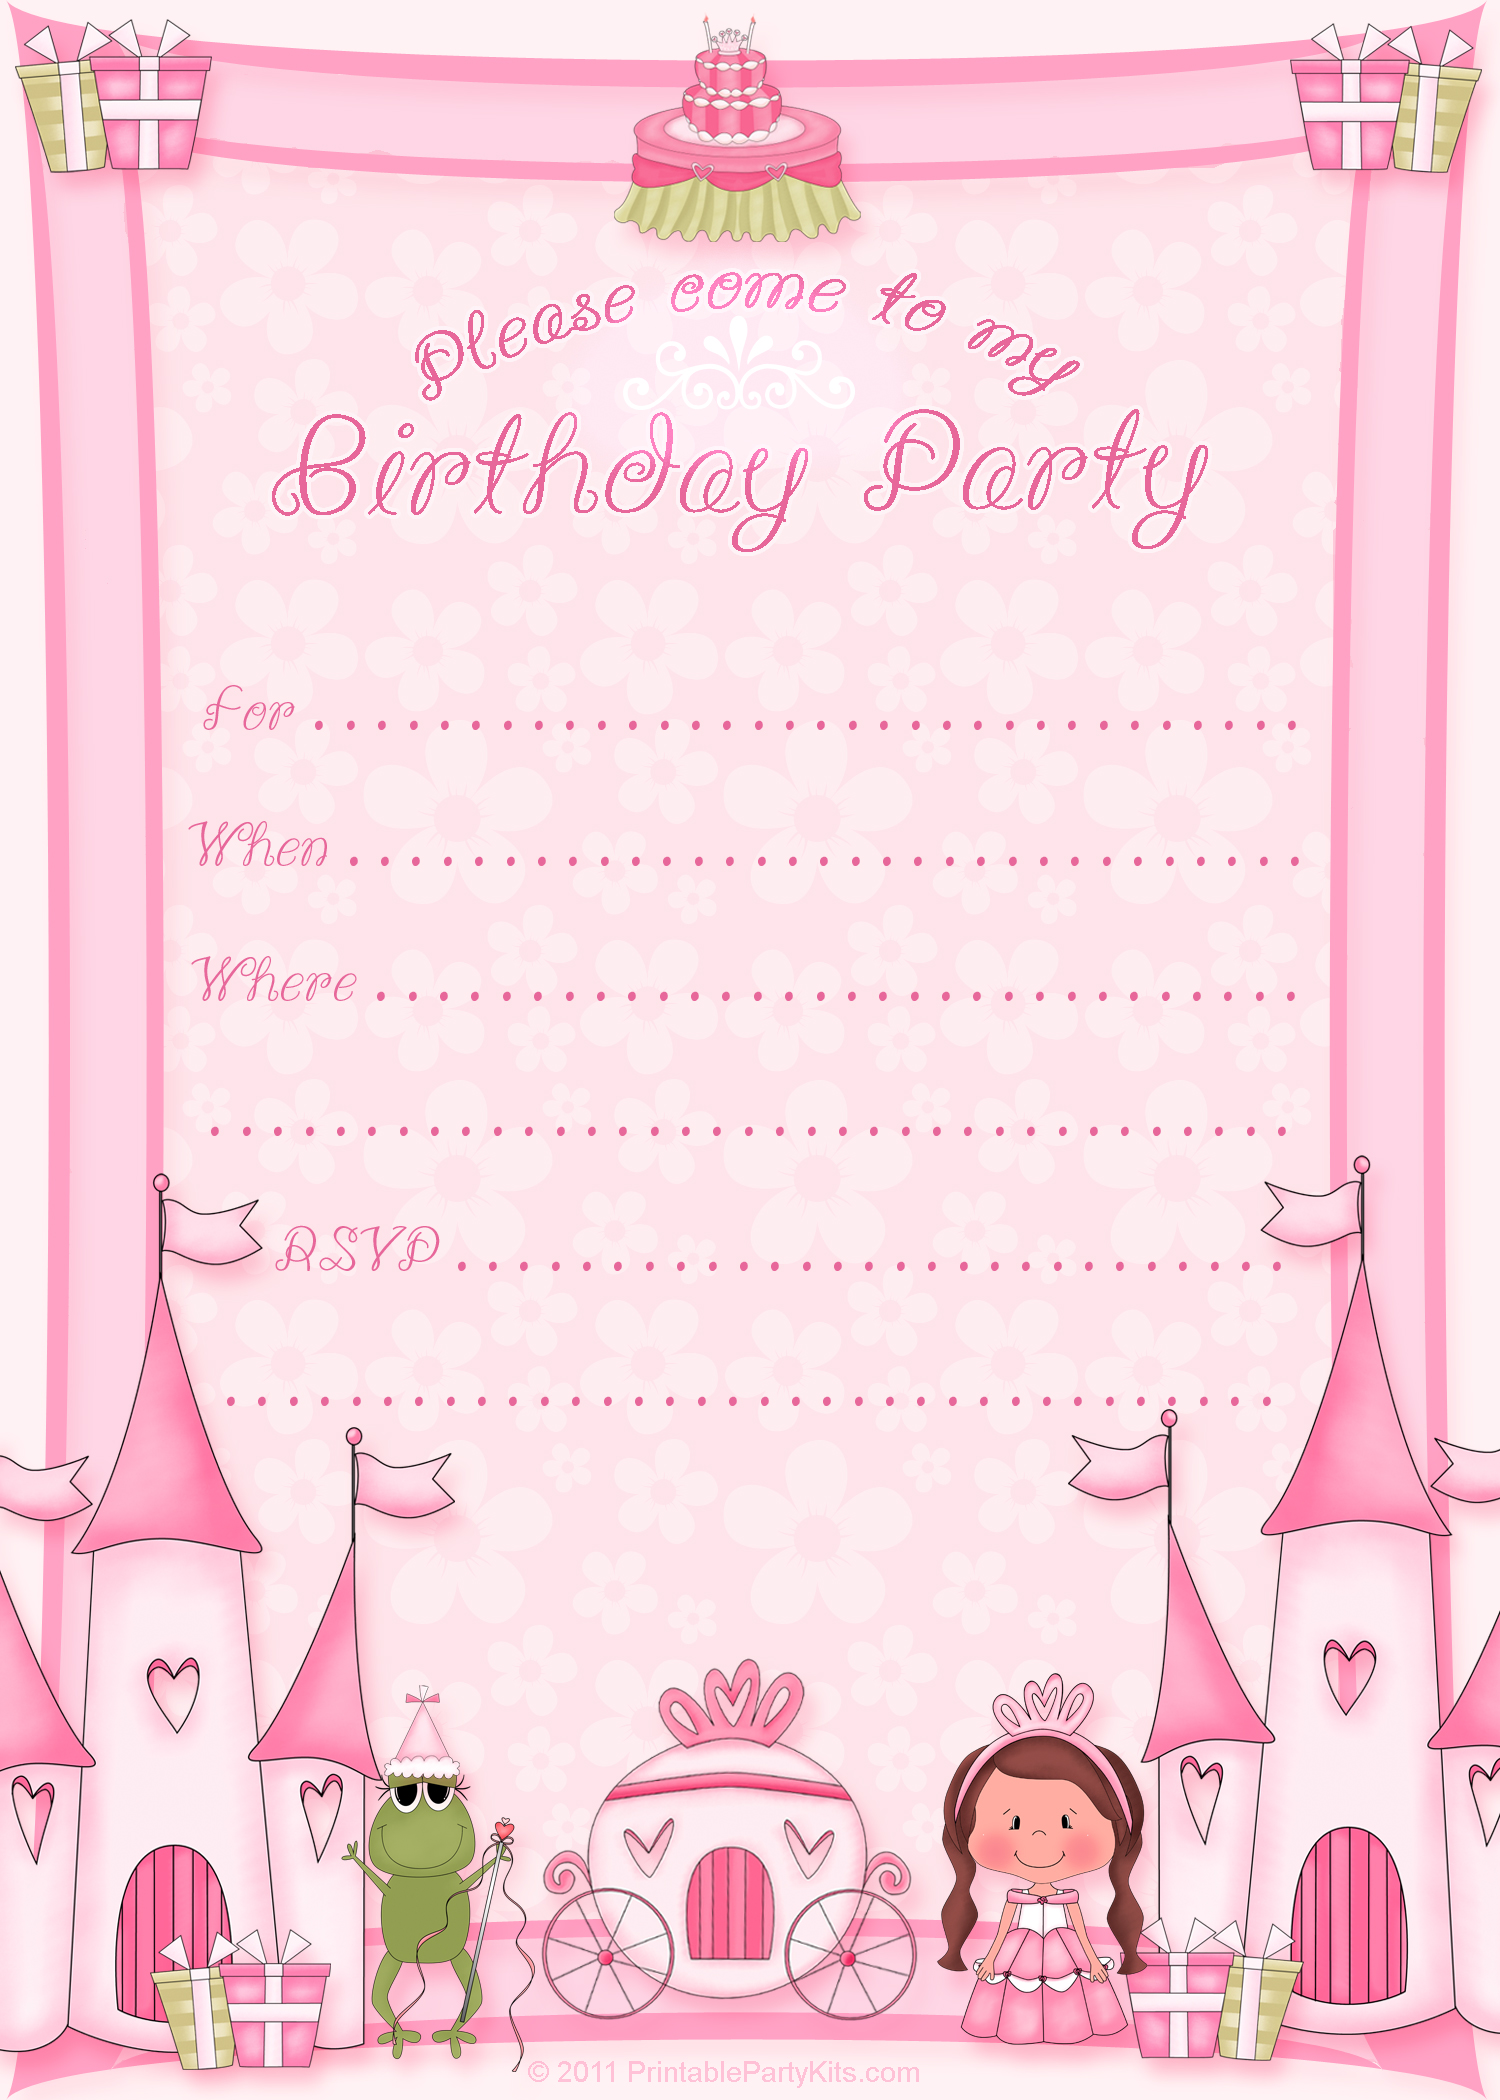 9 Images of Princess Birthday Invitation Templates Printable Free